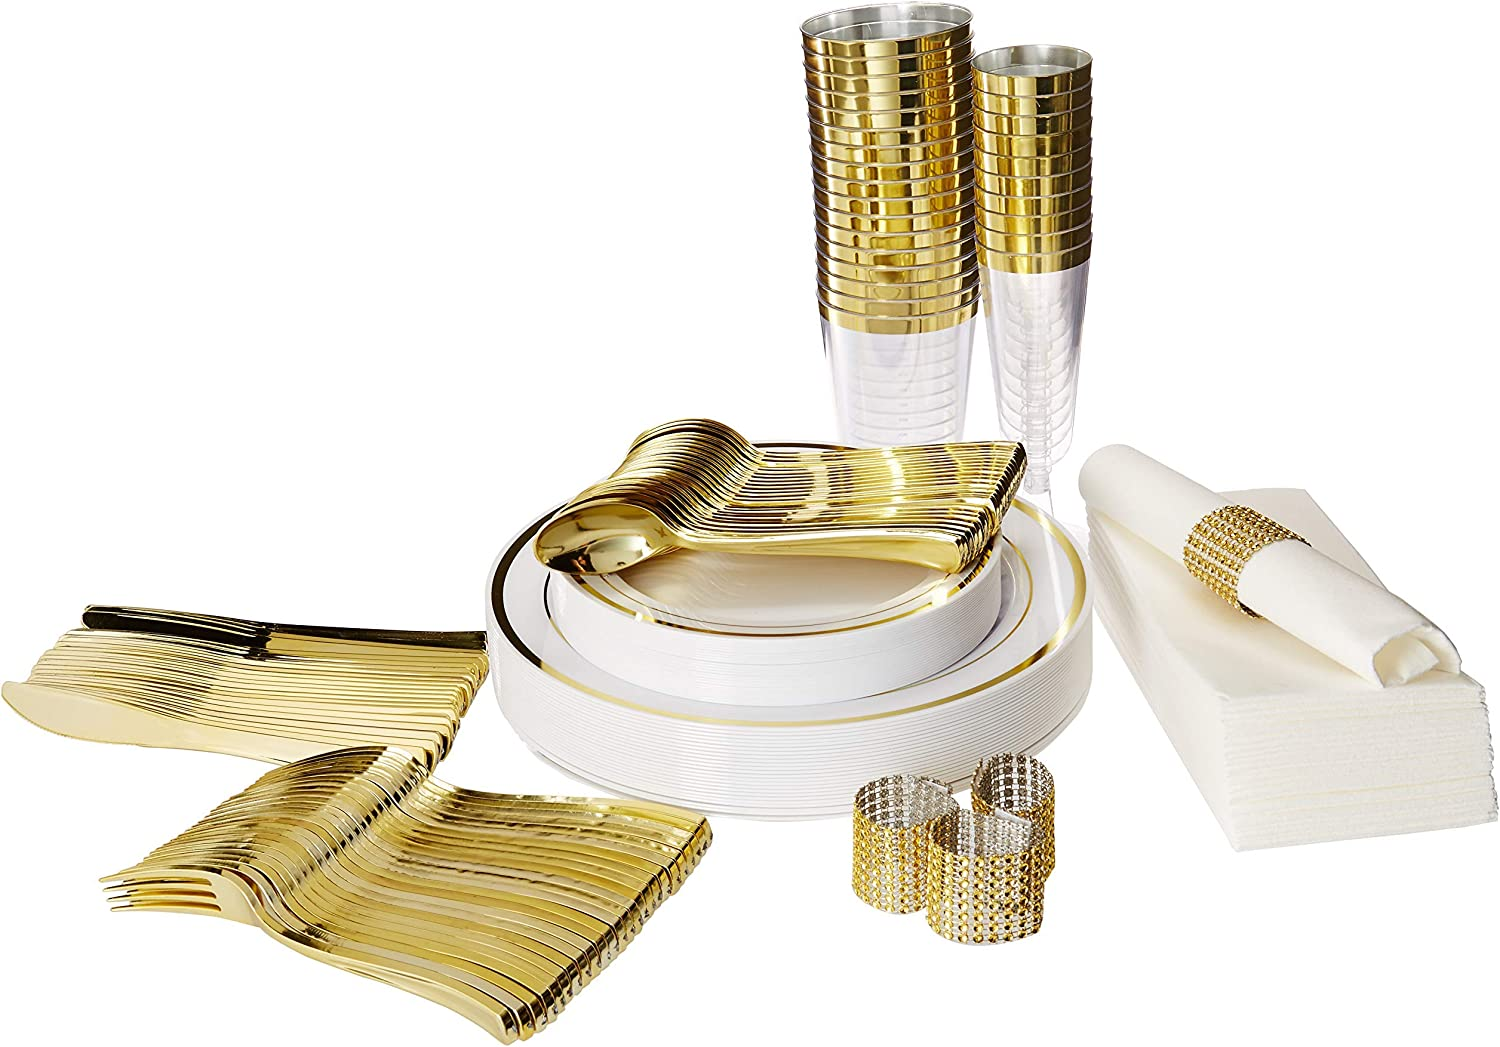 Plastic Dinnerware Set – TrueLook Tableware  24 Disposable Plates, Cups, Flutes, Napkins, Napkin Rings and Silverware - White and gold Plastic Plates for Parties, Wedding, Fancy Dinner Occasions